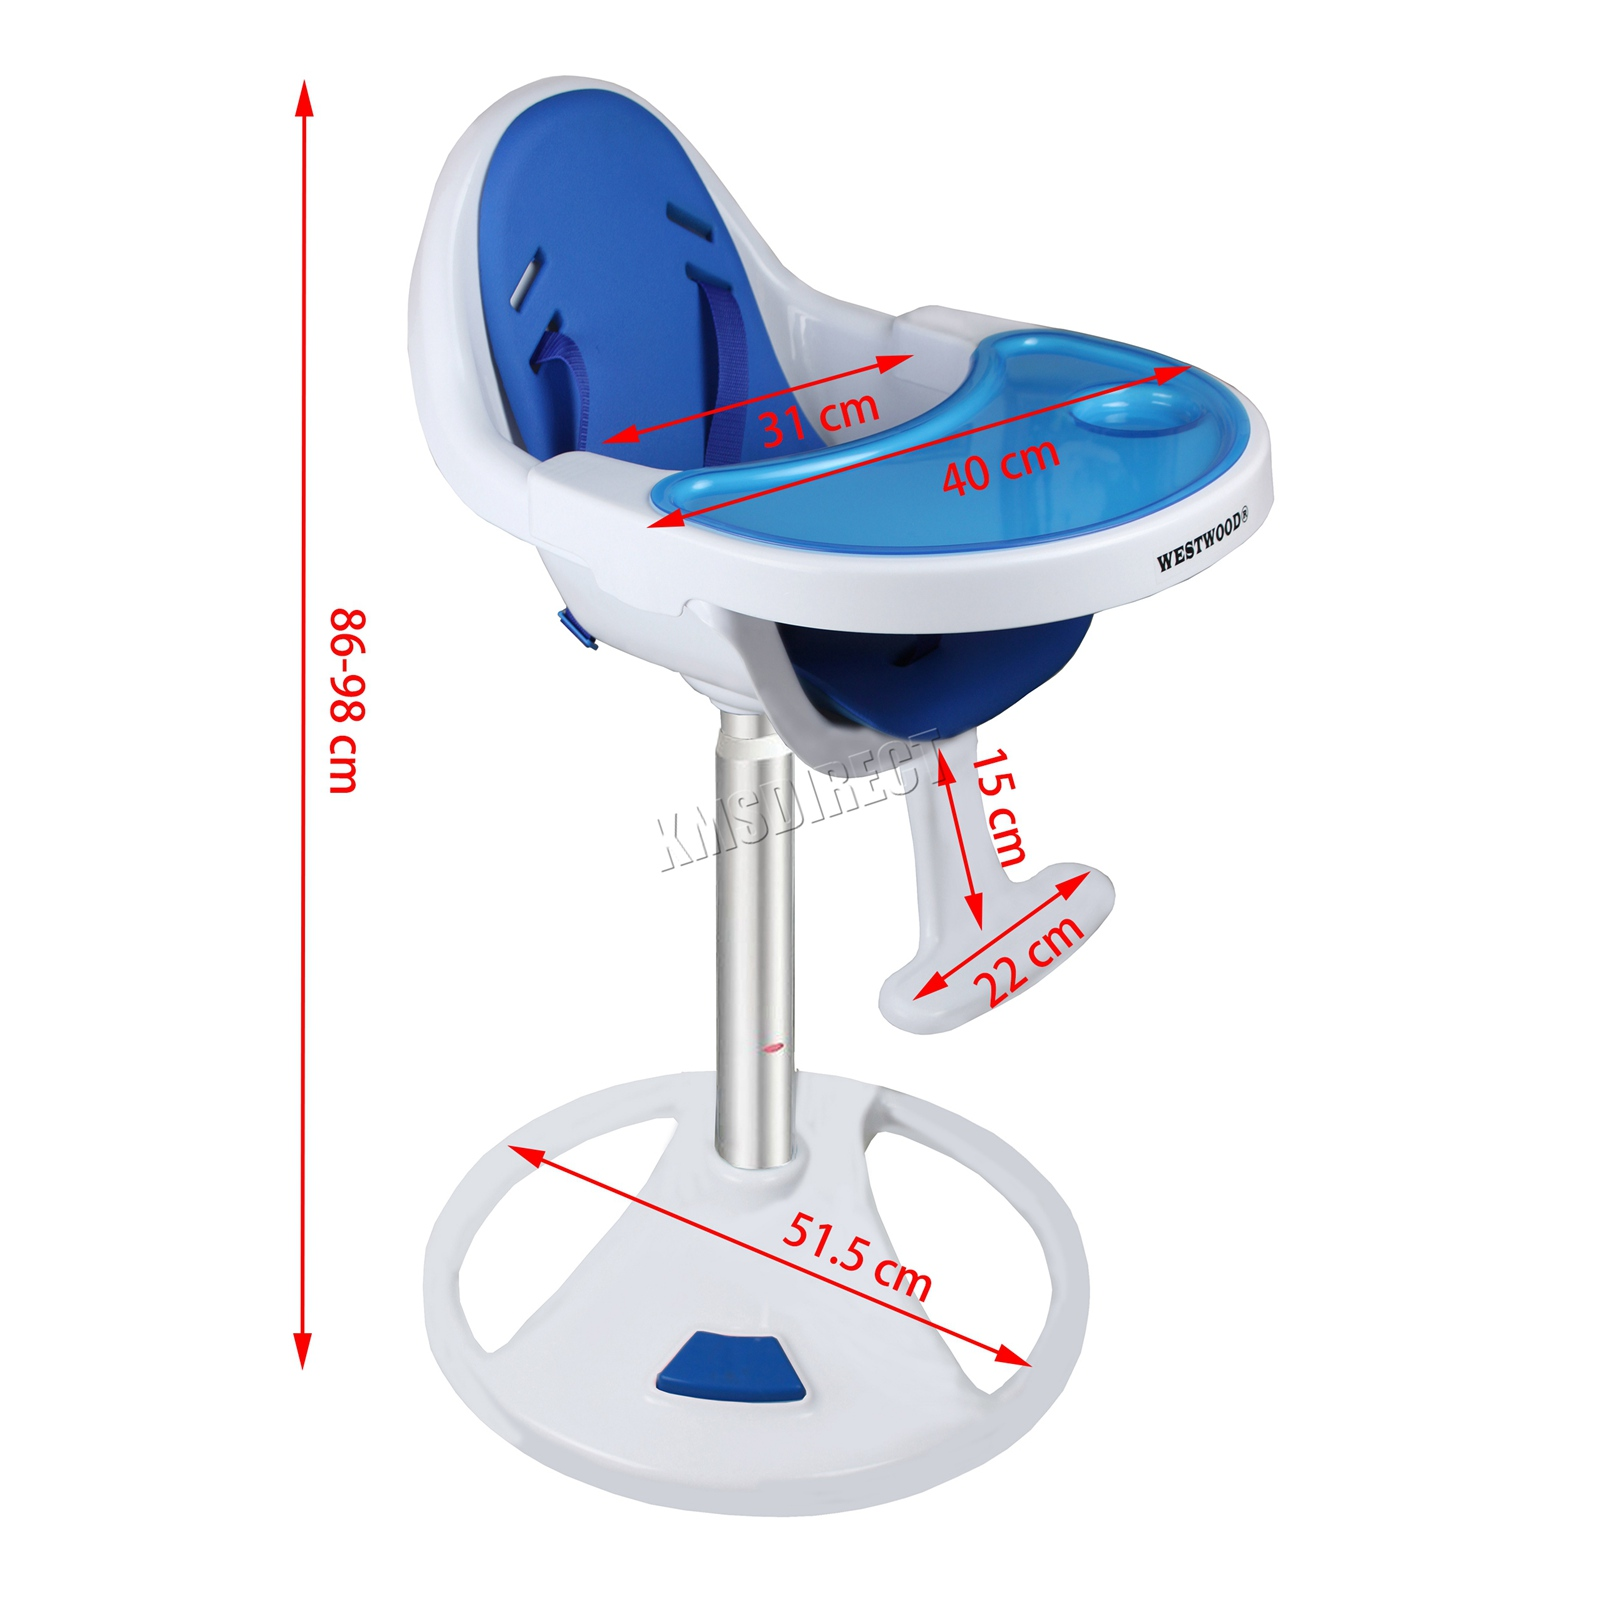 WestWood-360-Swivel-Baby-Highchair-Infant-feeding-Seat-Table-High-Chair-BHC03 thumbnail 20